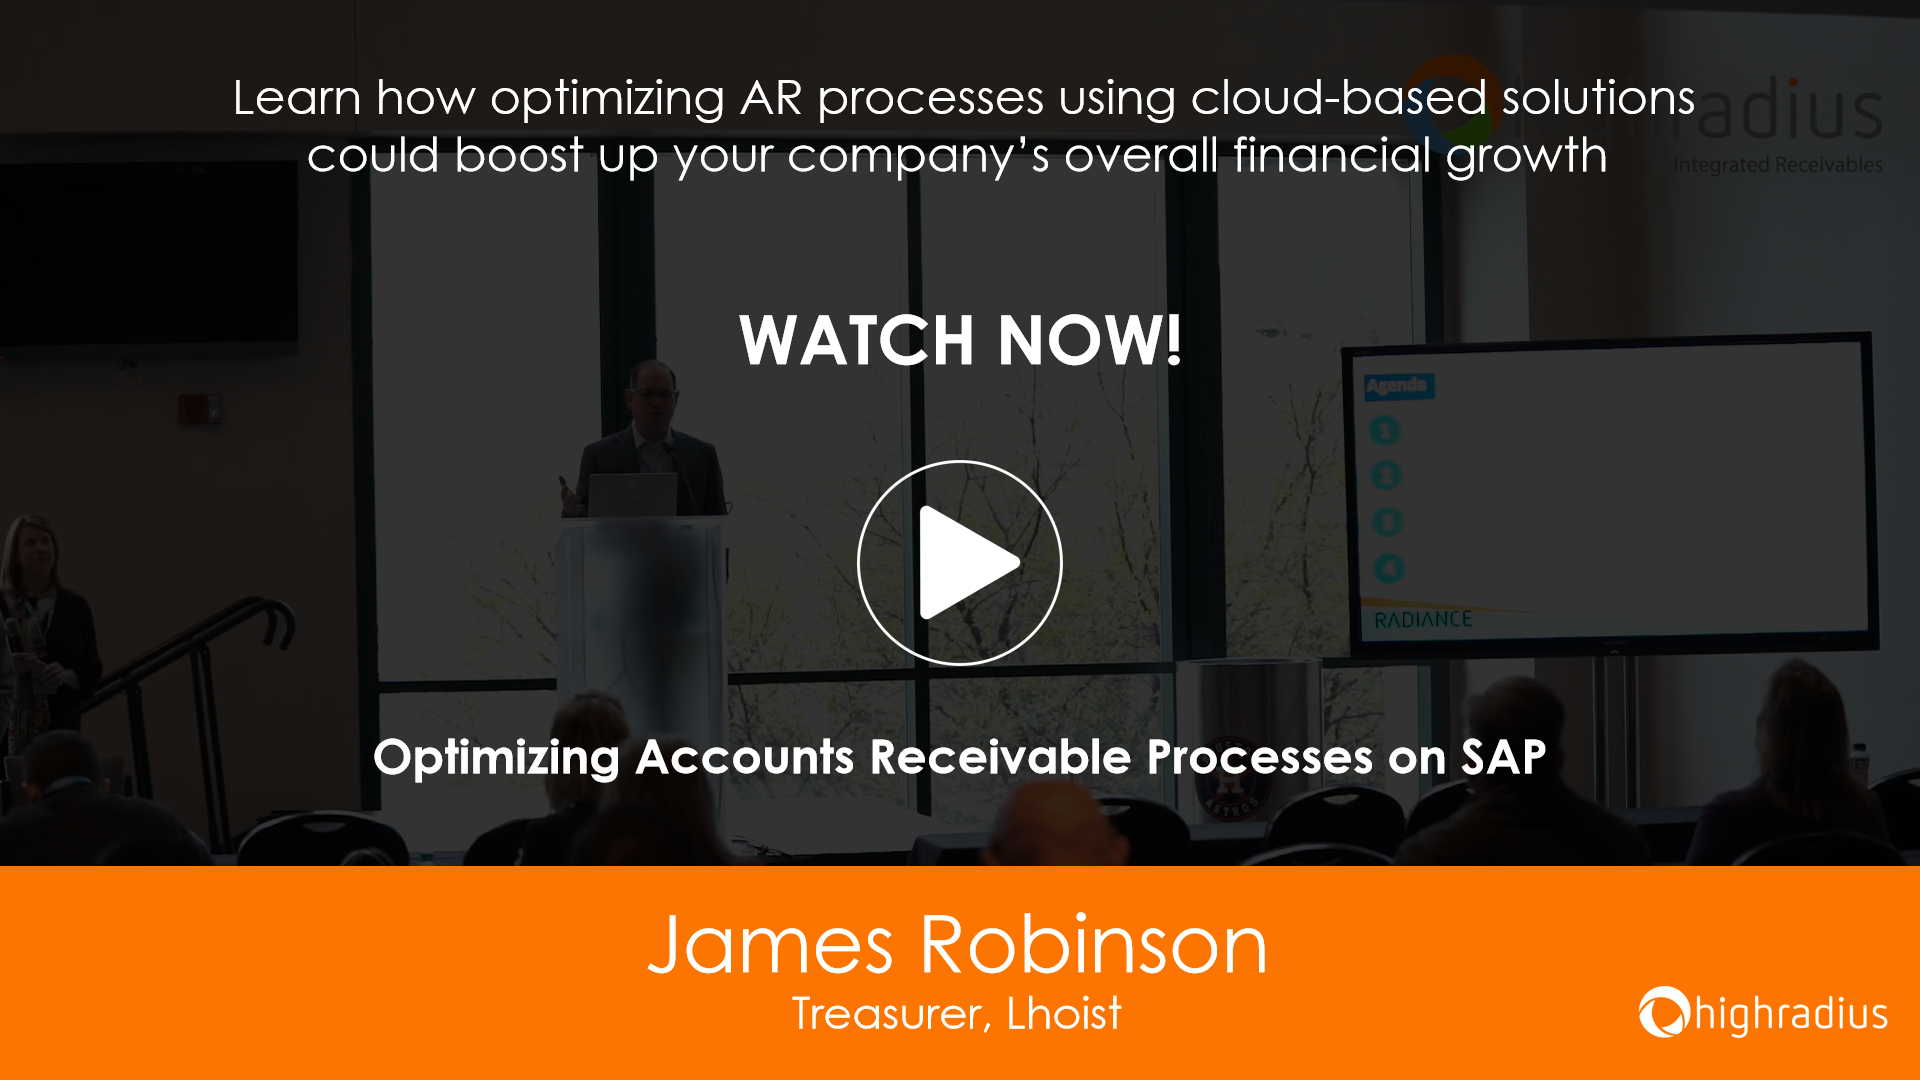 Optimizing Accounts Receivable Processes on SAP